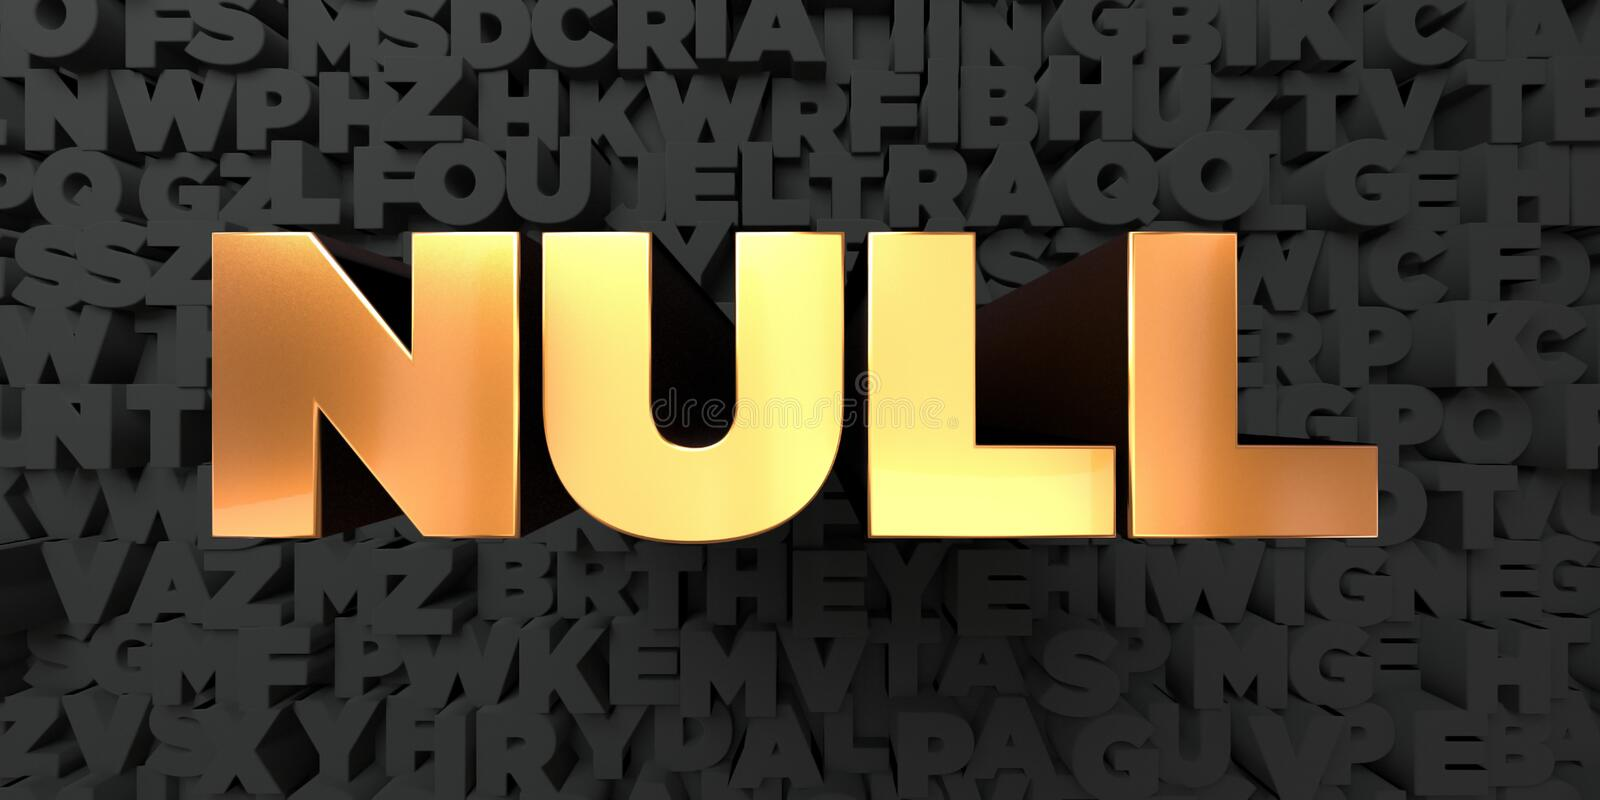 Null - Gold text on black background - 3D rendered royalty free stock picture. This image can be used for an online website banner ad or a print postcard stock illustration